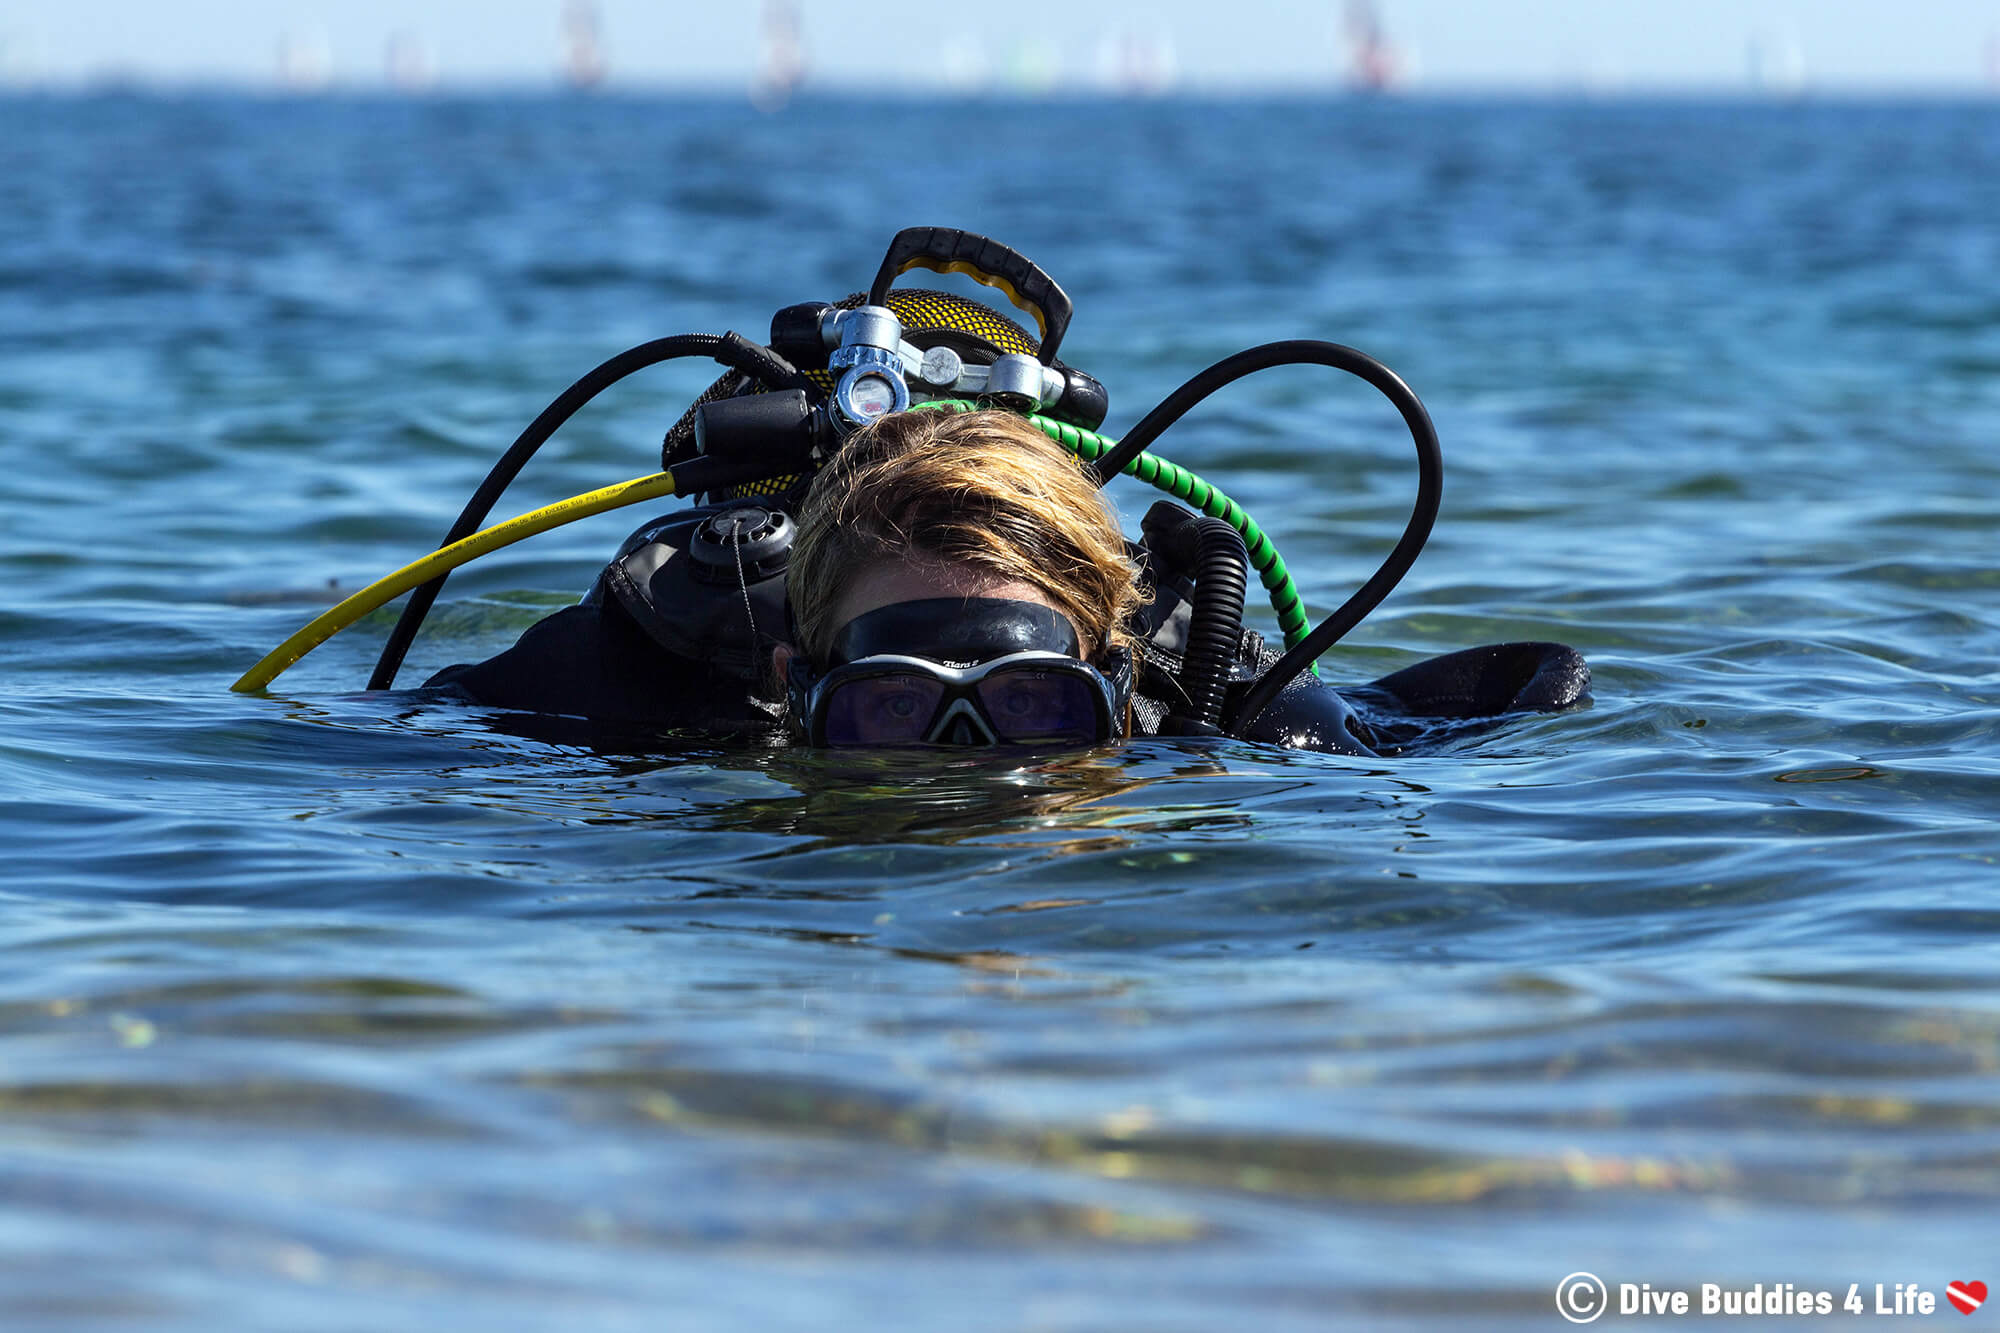 Ali In Scuba Diving Equipment Peeking Out Of The Water In France, Europe